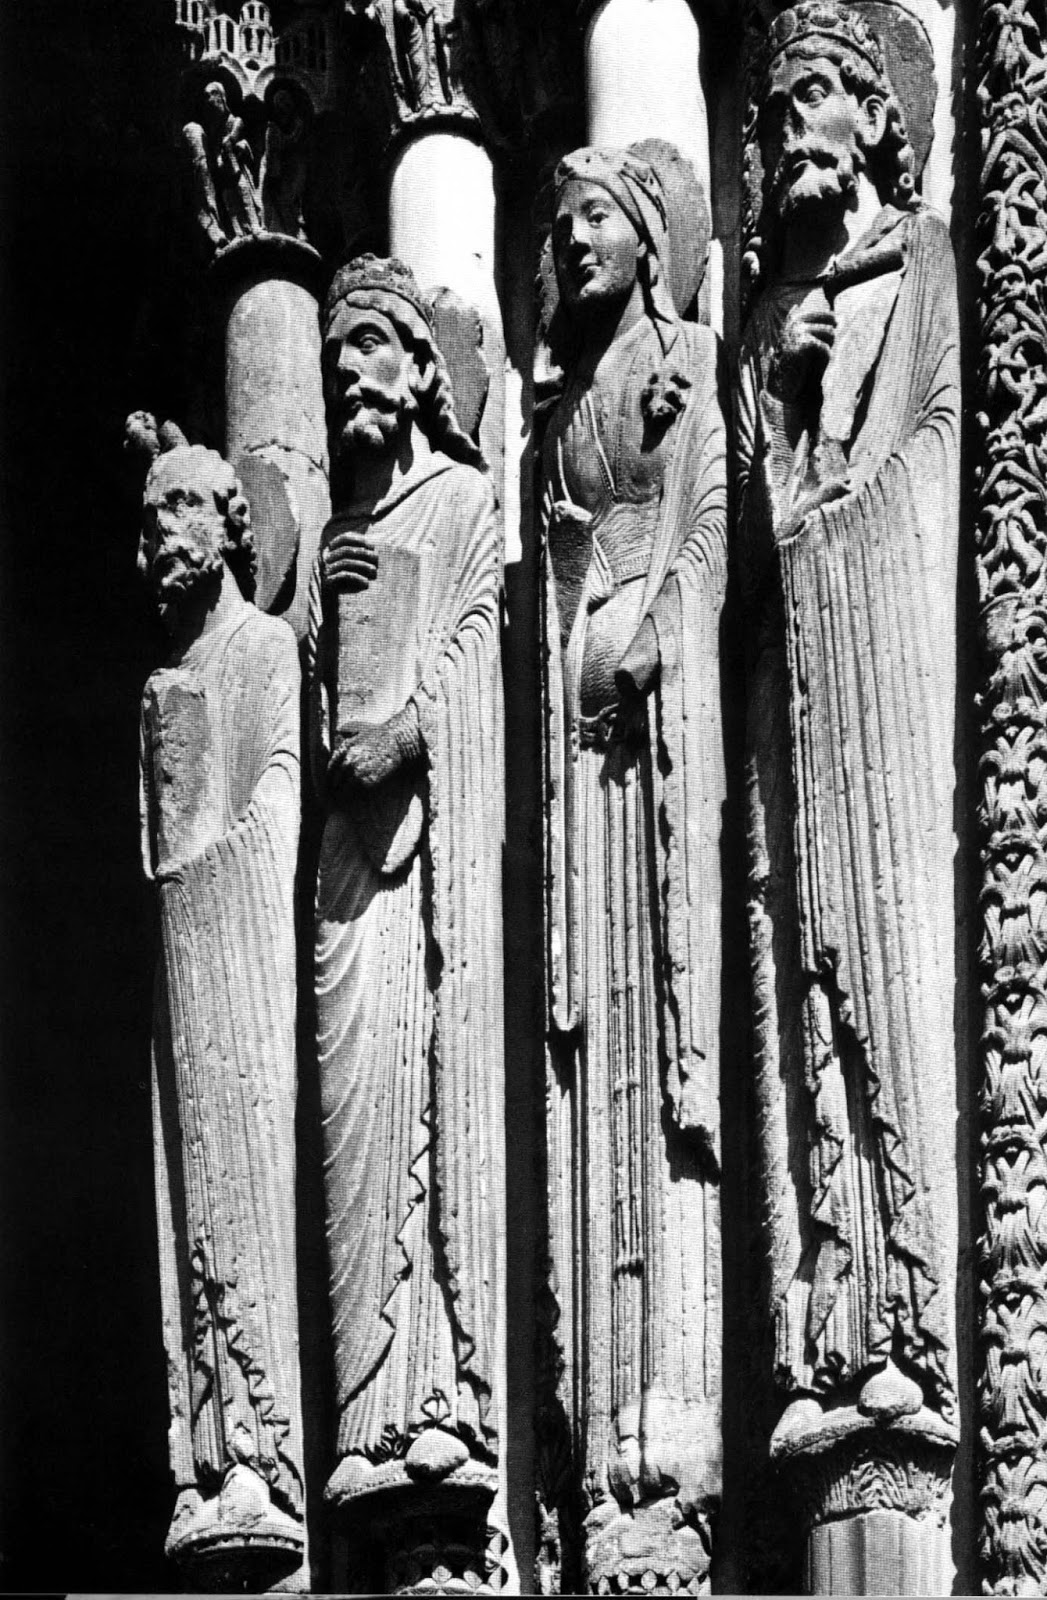 We Can Meet It In The Egyptian Sculpture Greek Kouros Romanesque Virgin Below Right And First Ever Gothic Statues Column At Chartres